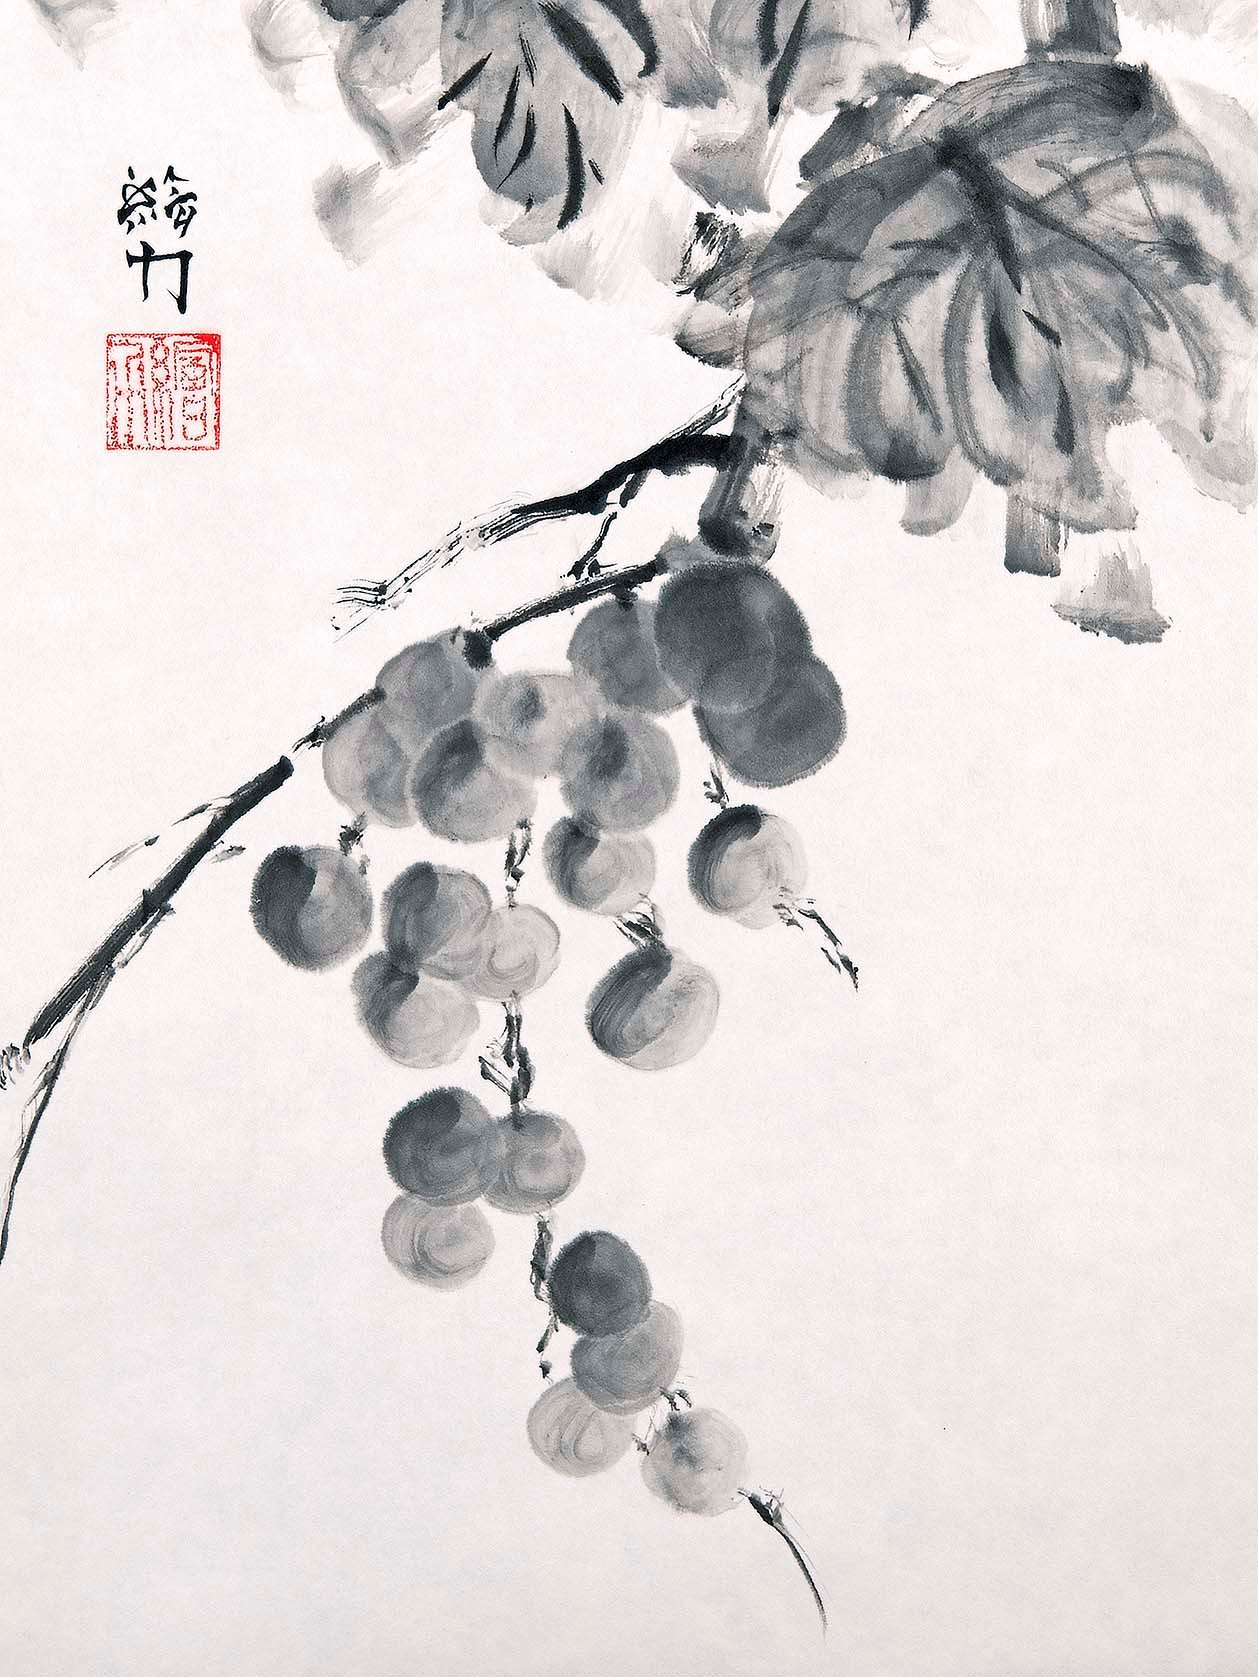 Hombretheartist sumie grapes 2 forwebsite hfcnee